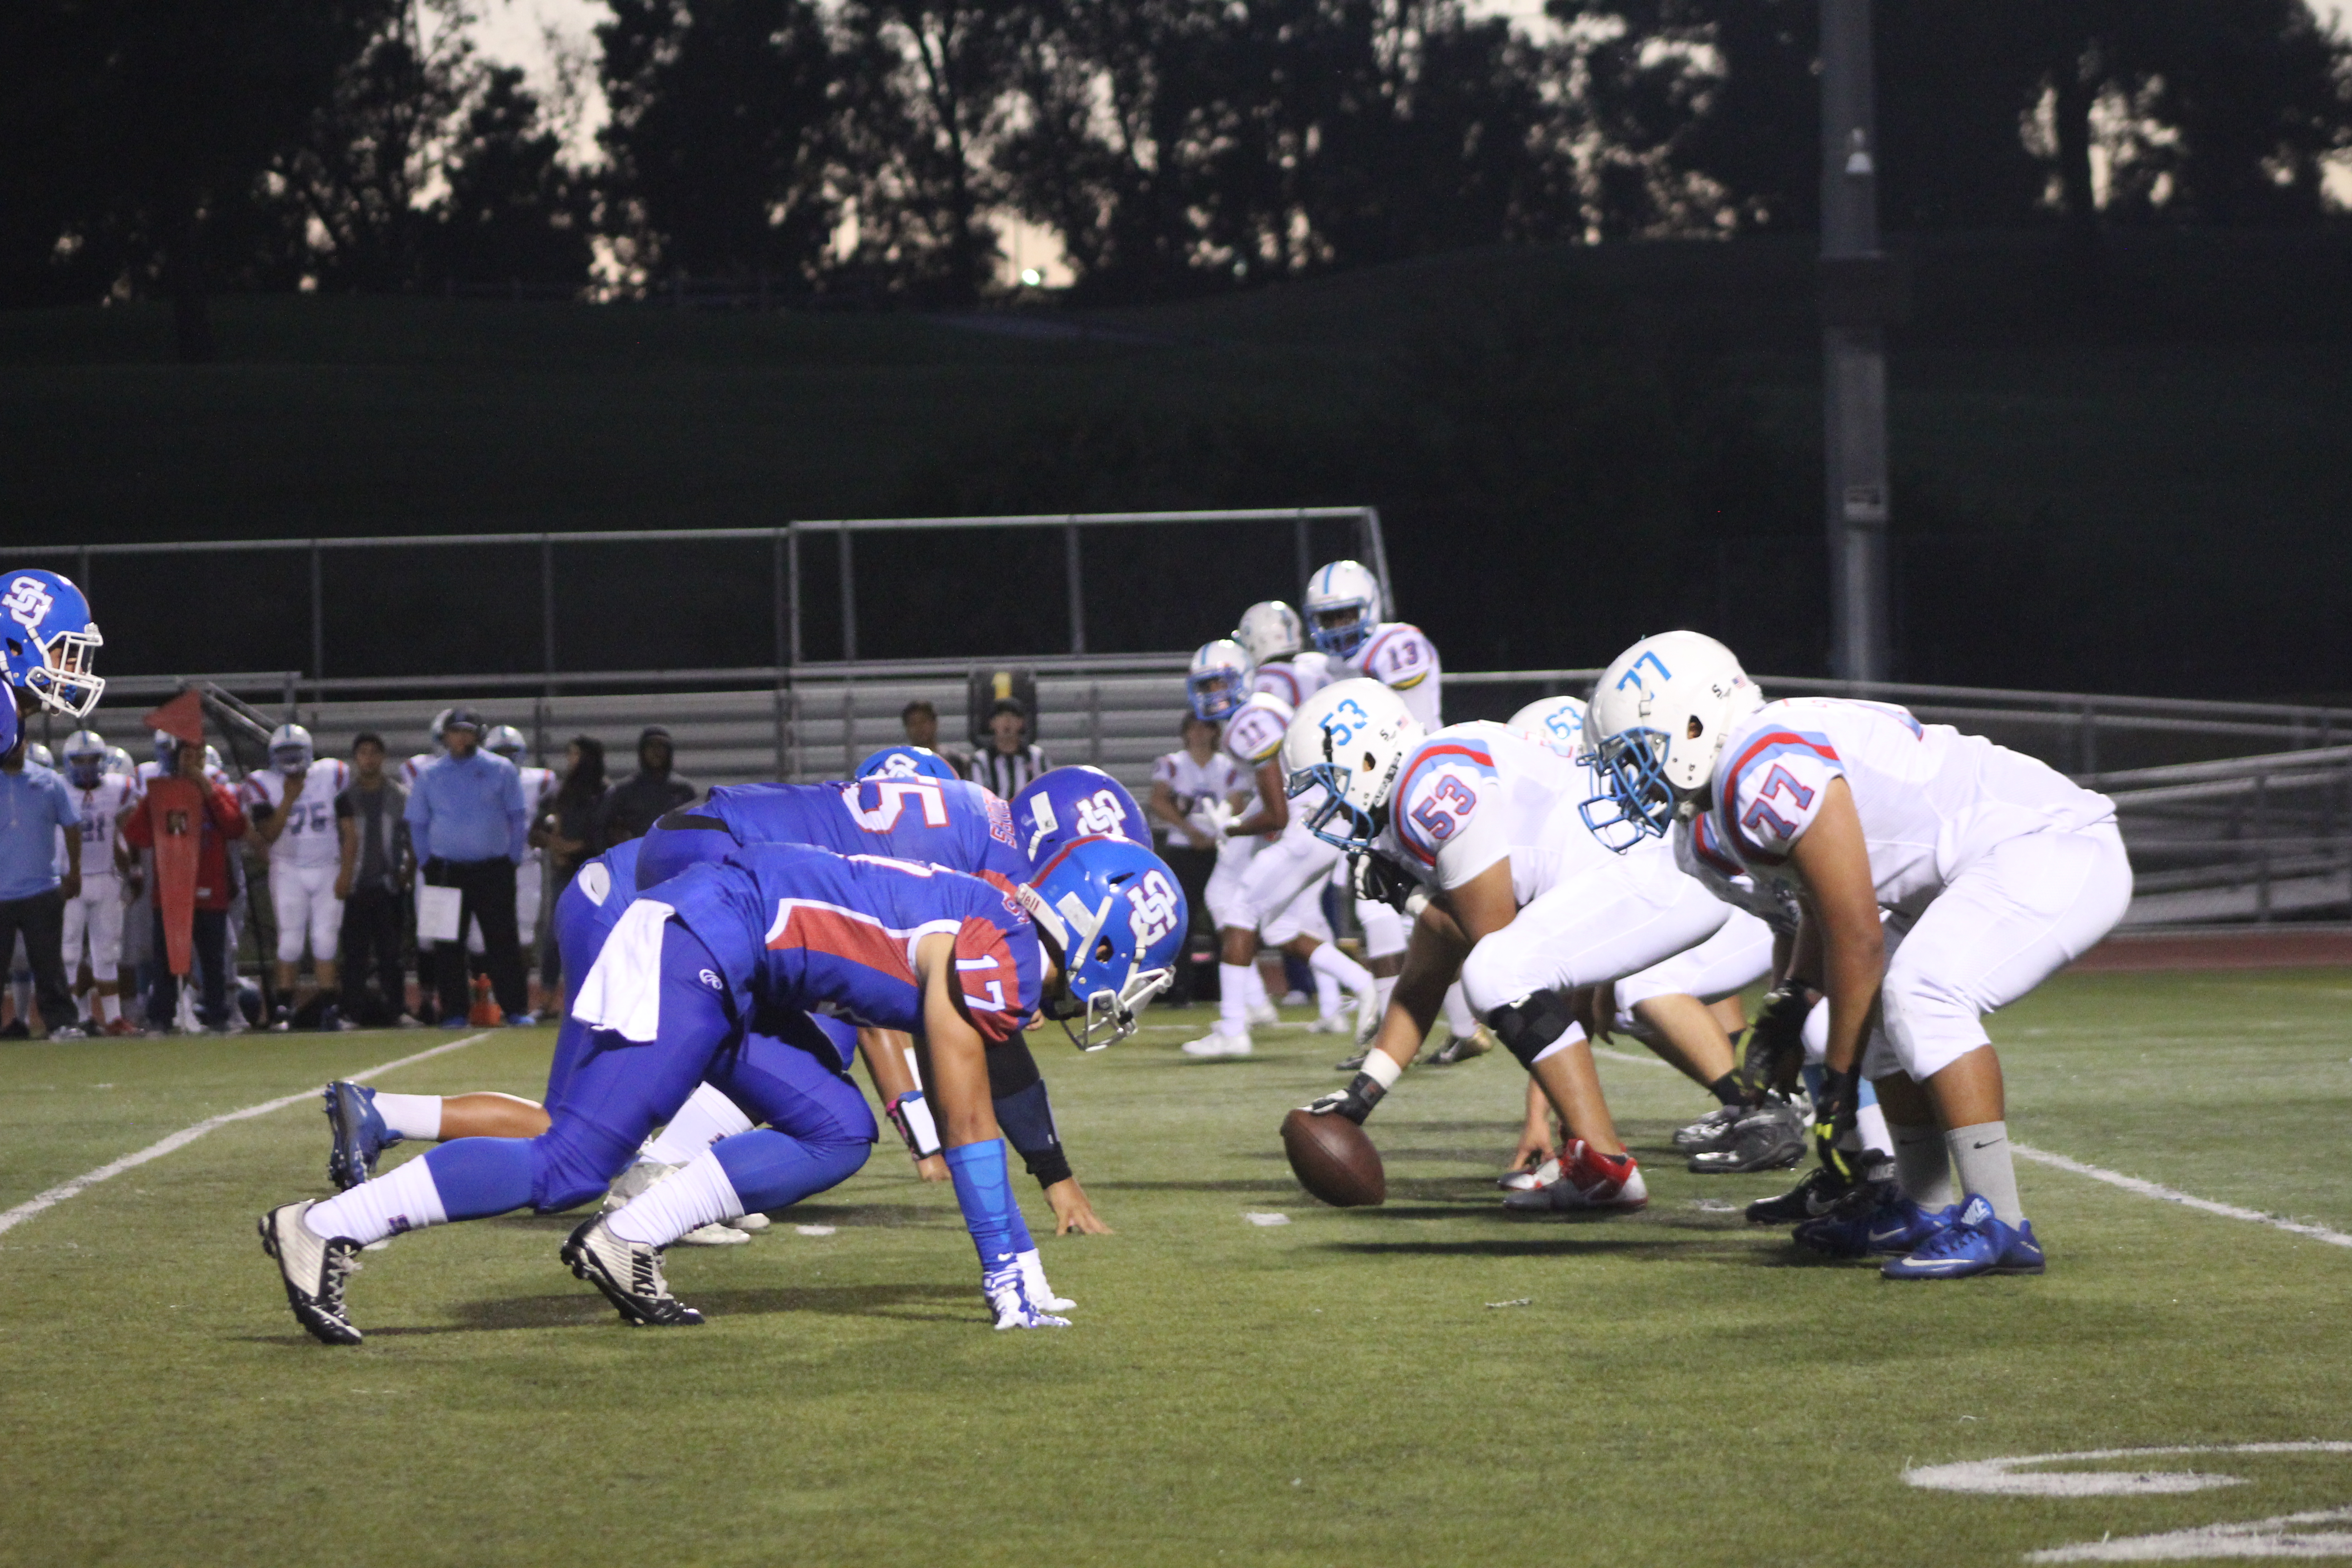 Varsity football team defeats Ganesha, earns redemption